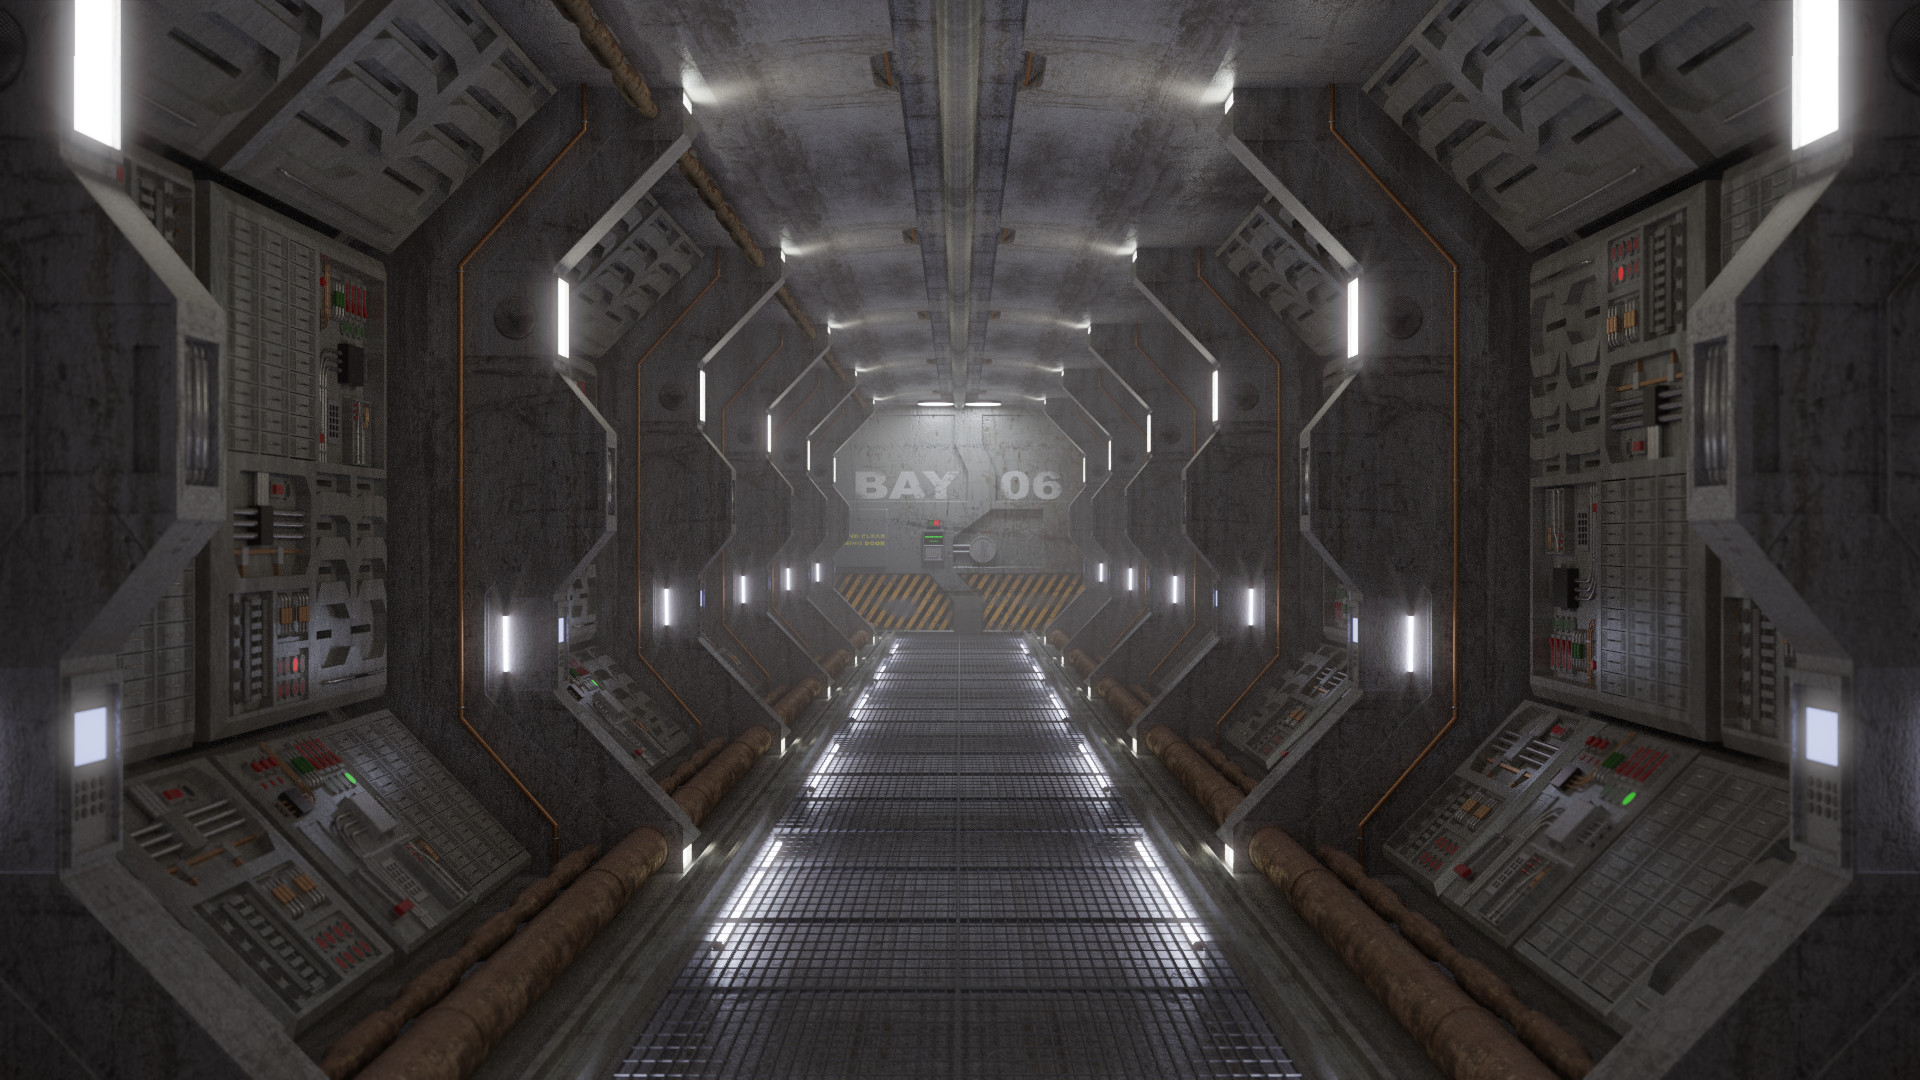 ArtStation - Spaceship Corridor, Thomas Simonet